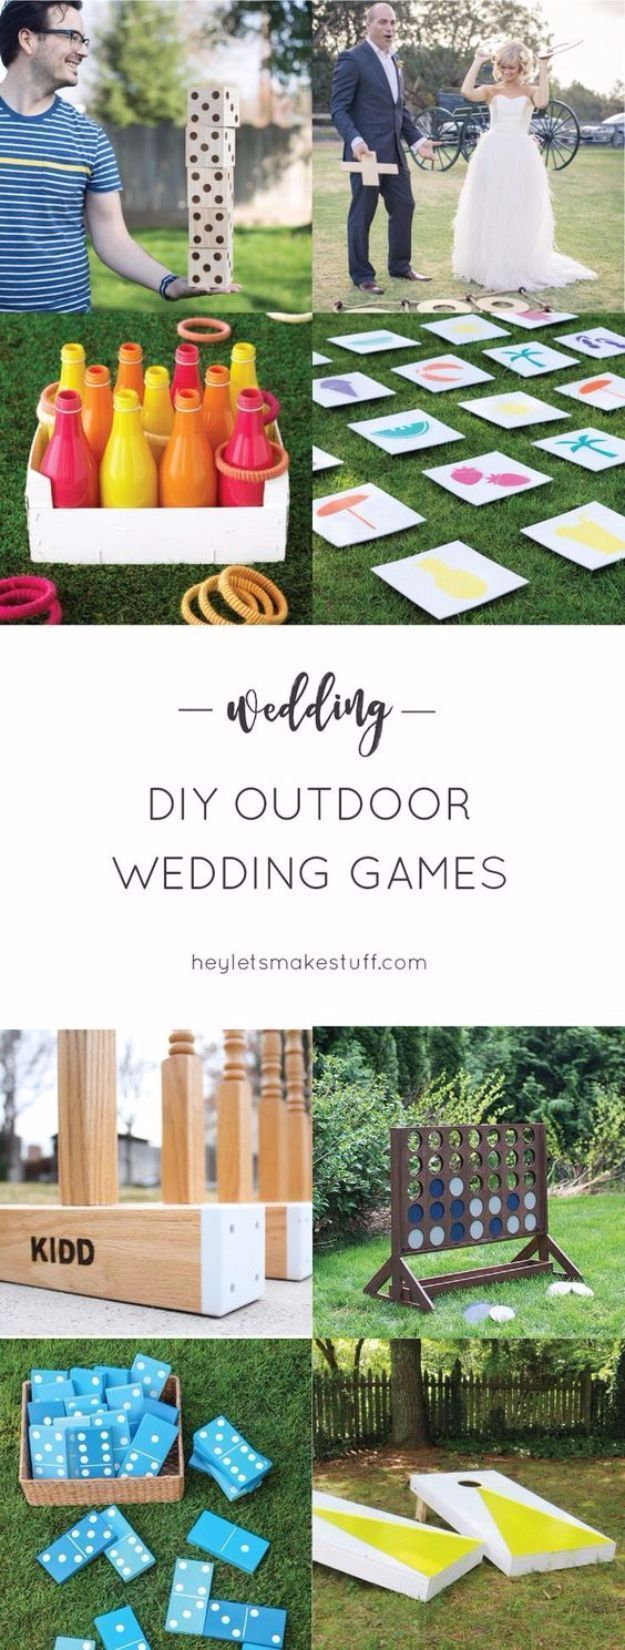 best diy ideas for your outdoor wedding decor games seating